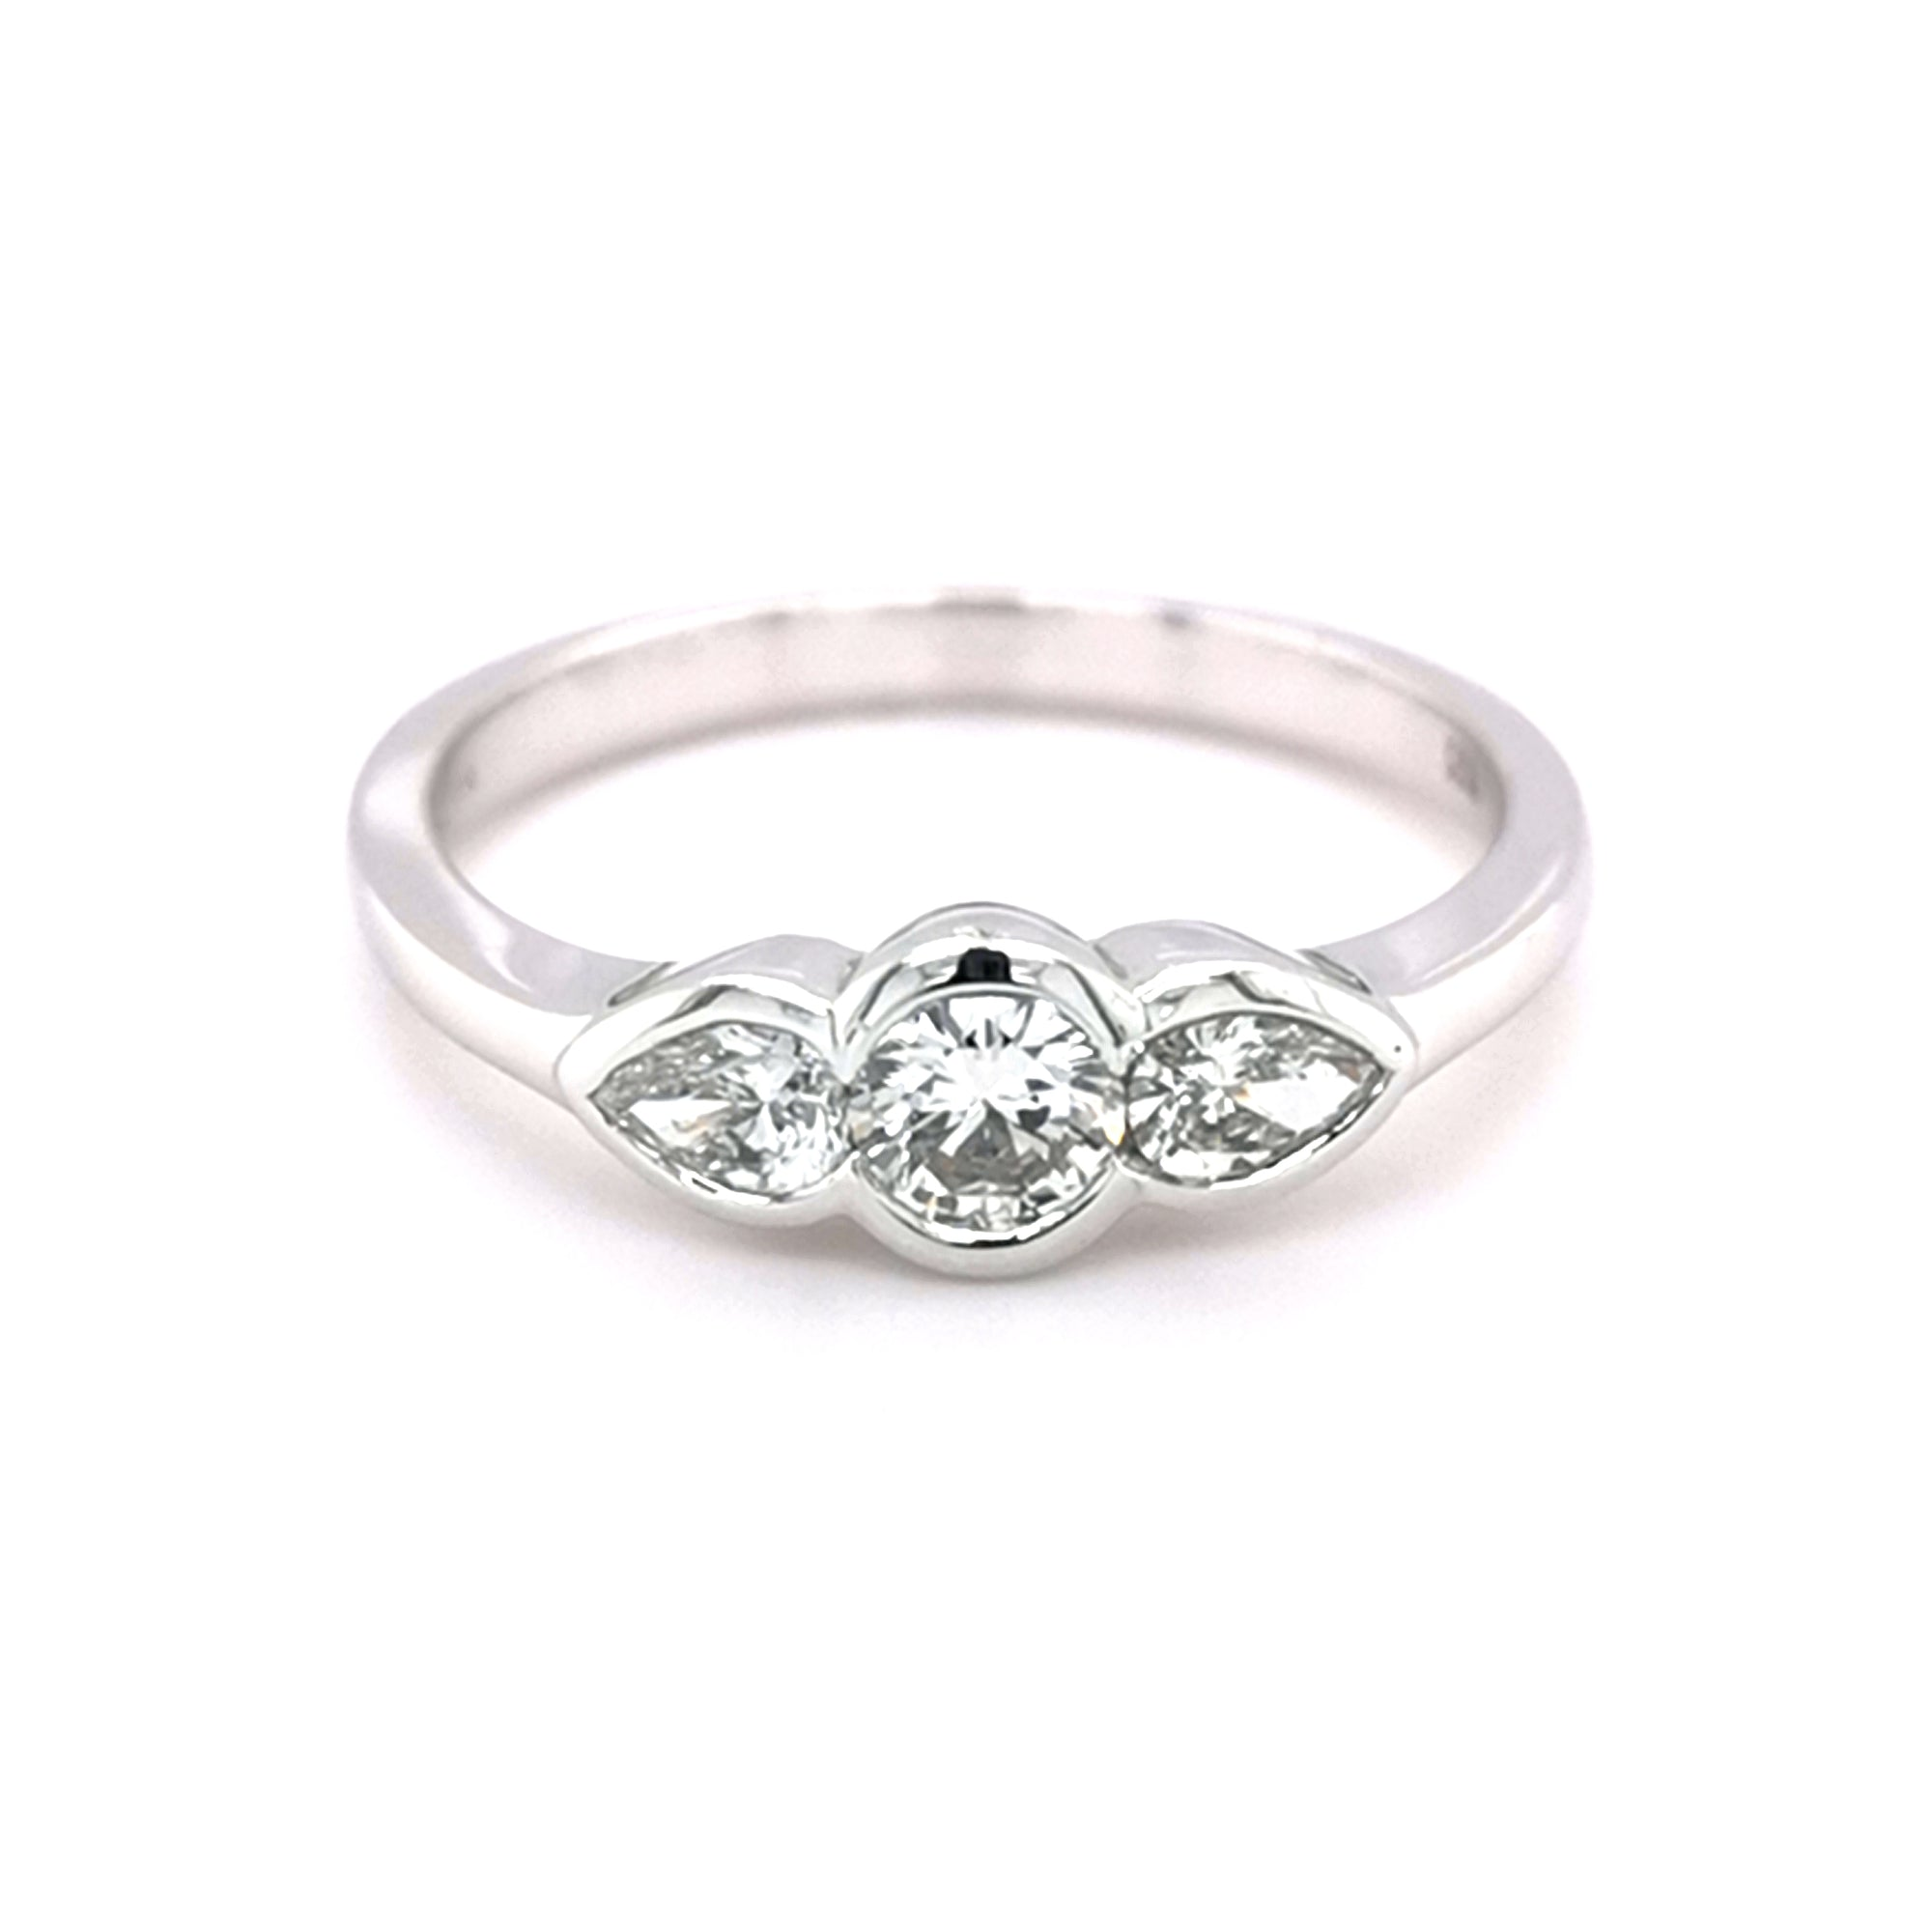 18ct Pear & Round Trilogy Diamond Ring - Sonny's